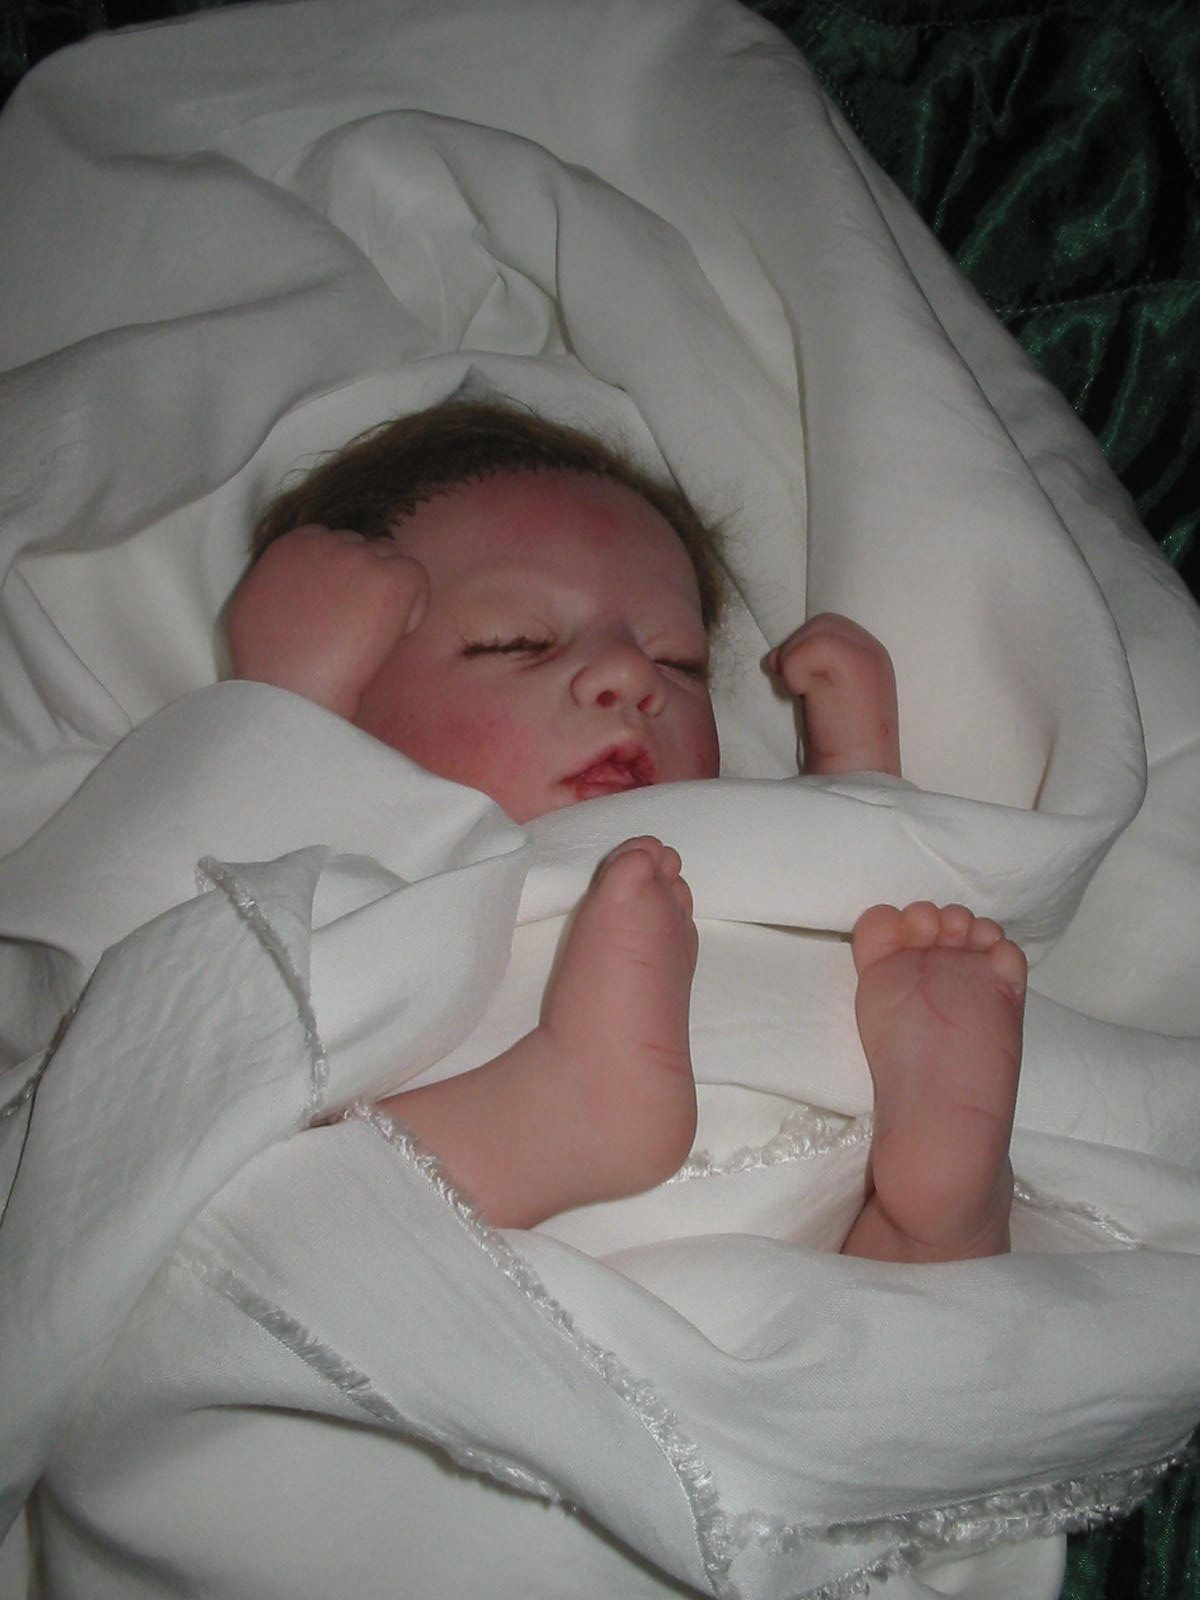 Hyperrealistic baby that is actually a doll.